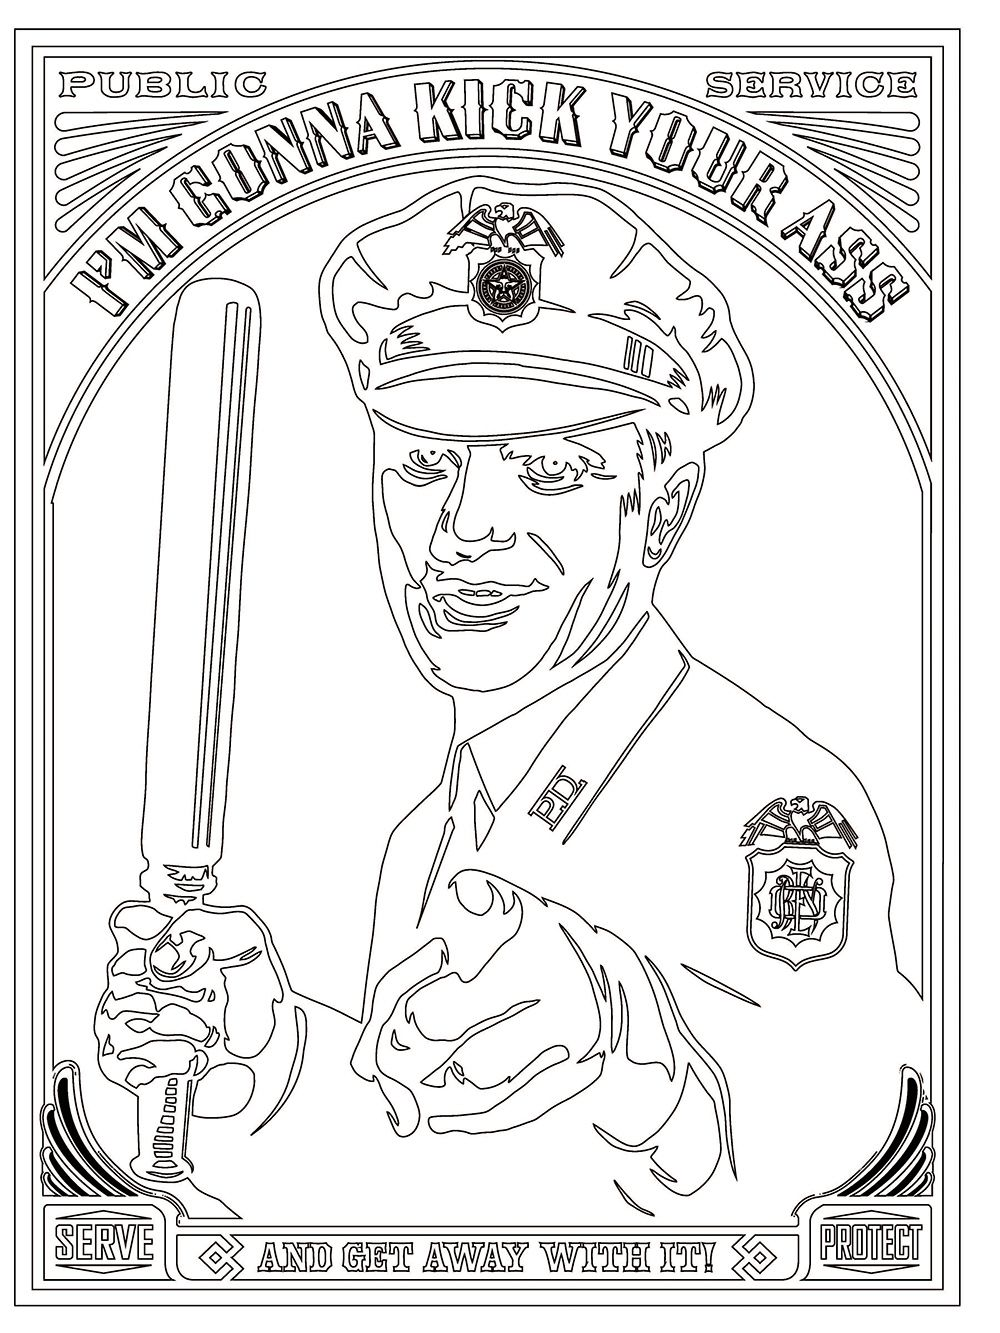 The Police Brutality Coloring-Book | Coloring books